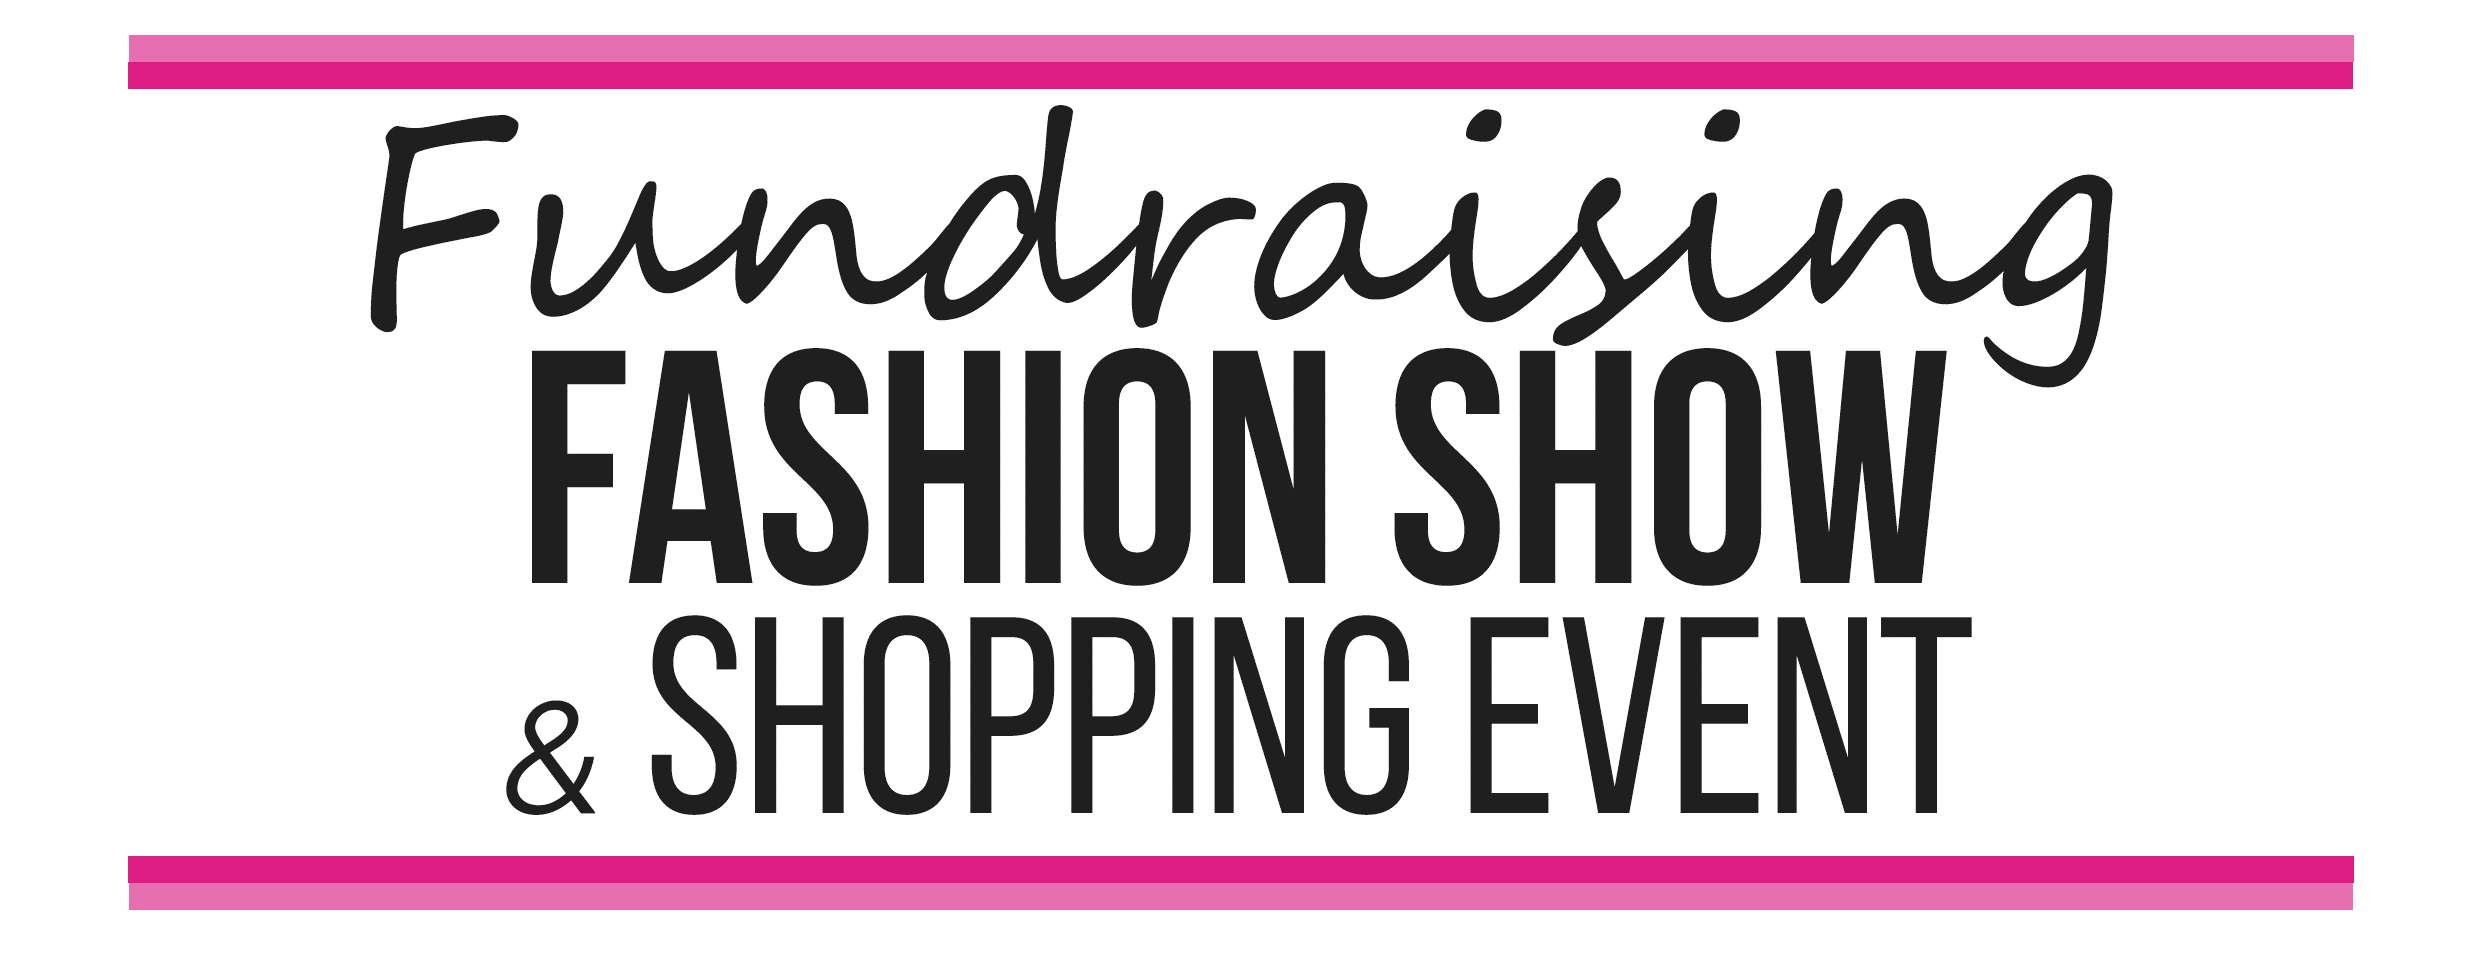 fasion show banner.png